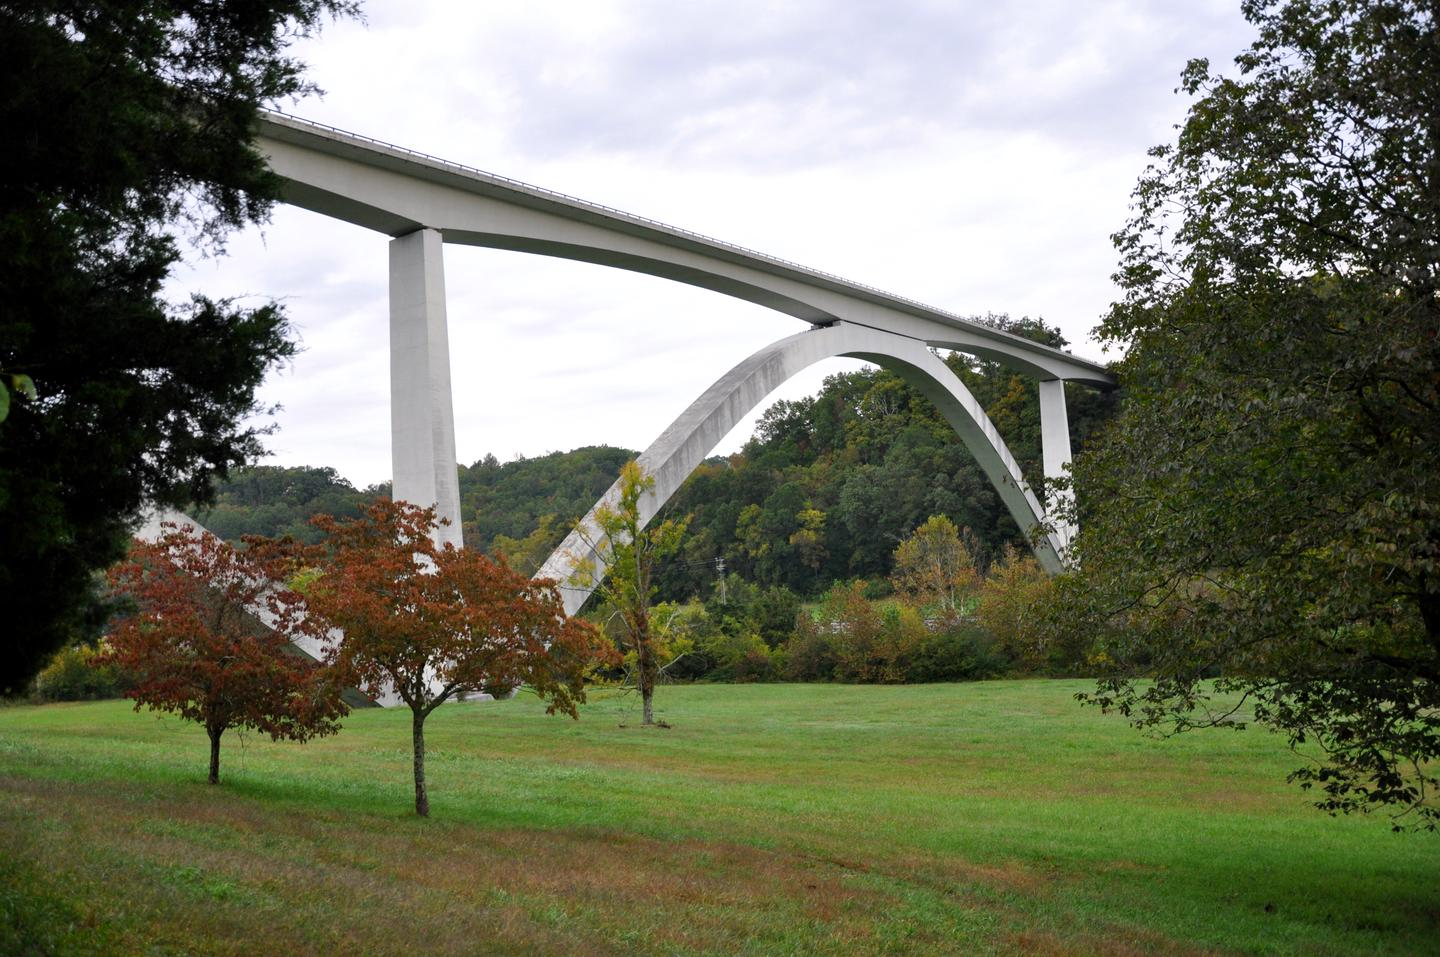 Double Arch Bridge over Birdsong Hollow (milepost 438) on the Natchez Trace ParkwayThe elegant Double Arch Bridge won the Presidential Award for Design Excellence in 1995. It spans Birdsong Hollow and Tennessee Highway 96. To see it from below, take the TN 96 exit and stop at the pulloff before you get to the highway.